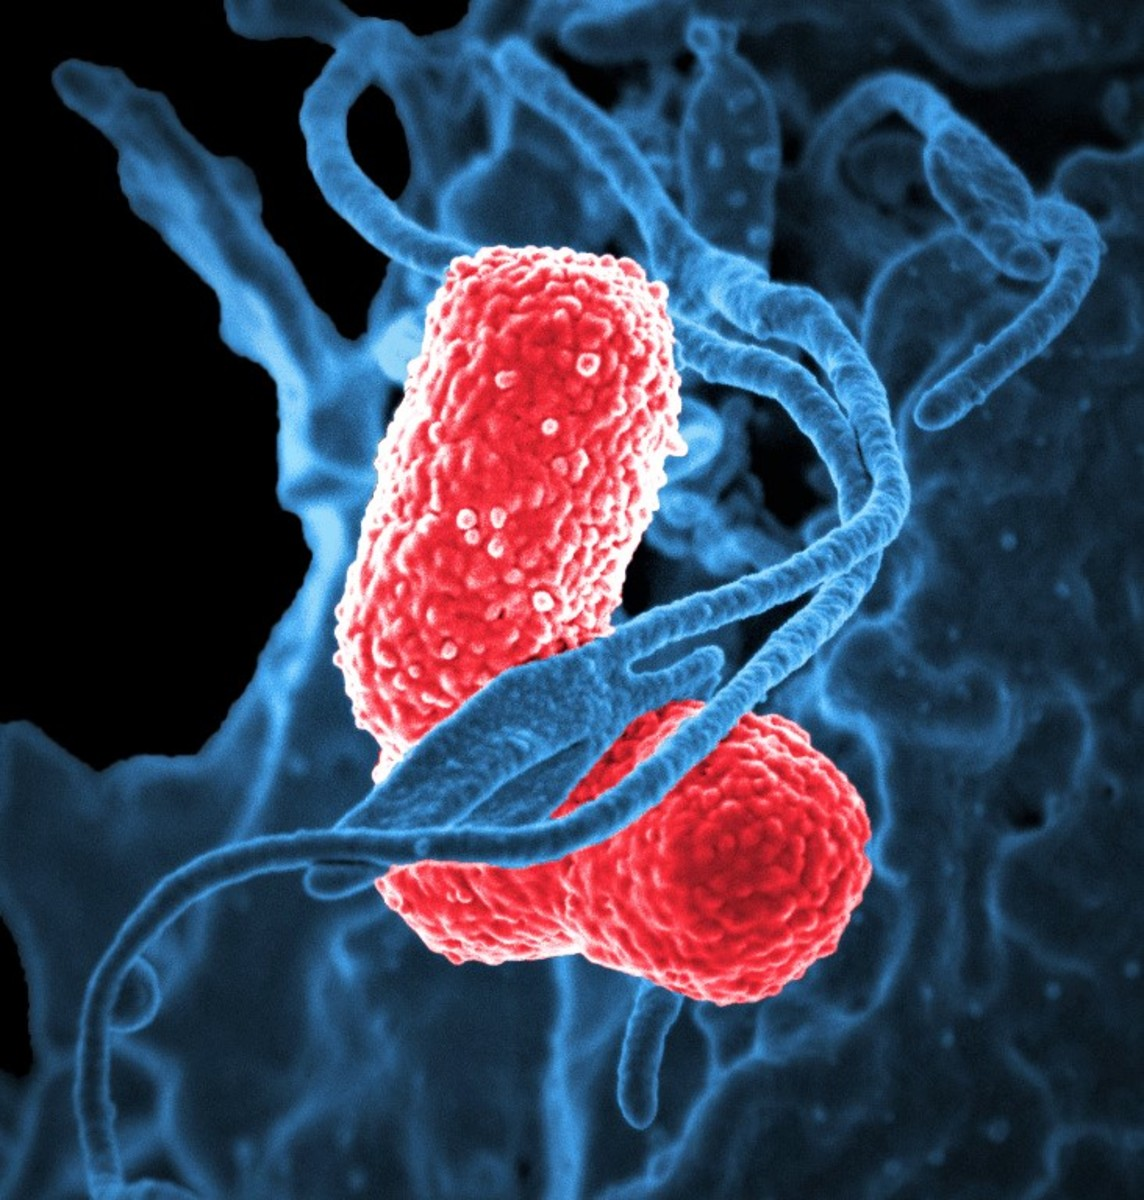 Klebsiella pneumoniae Facts, Possible Effects, and Research